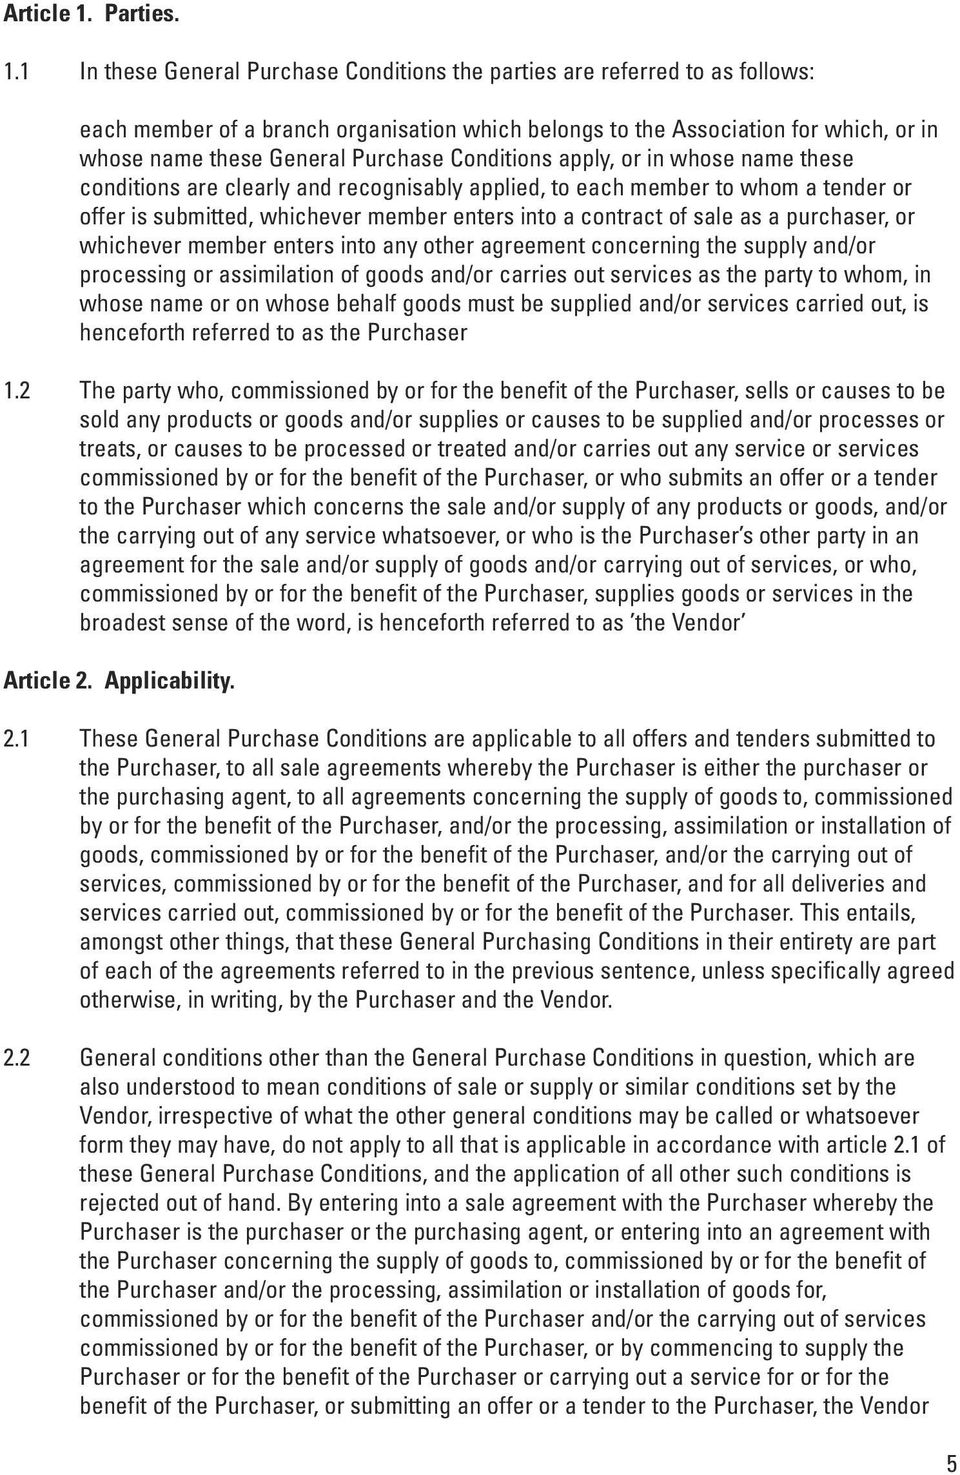 1 In these General Purchase Conditions the parties are referred to as follows: each member of a branch organisation which belongs to the Association for which, or in whose name these General Purchase